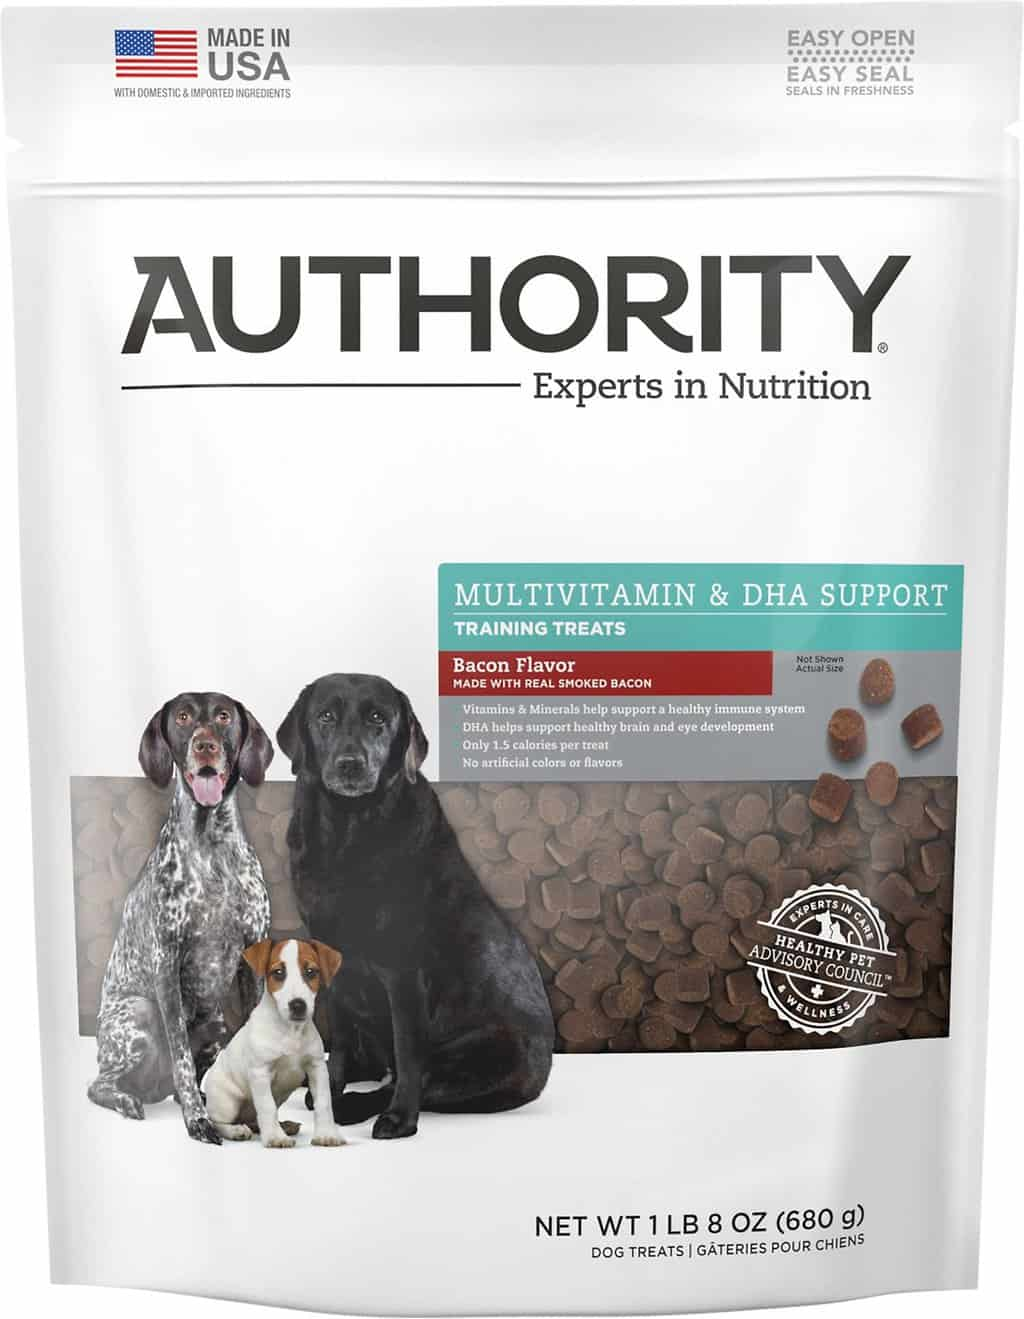 Authority Dog Food Coupons, Reviews and Recalls 2020 19